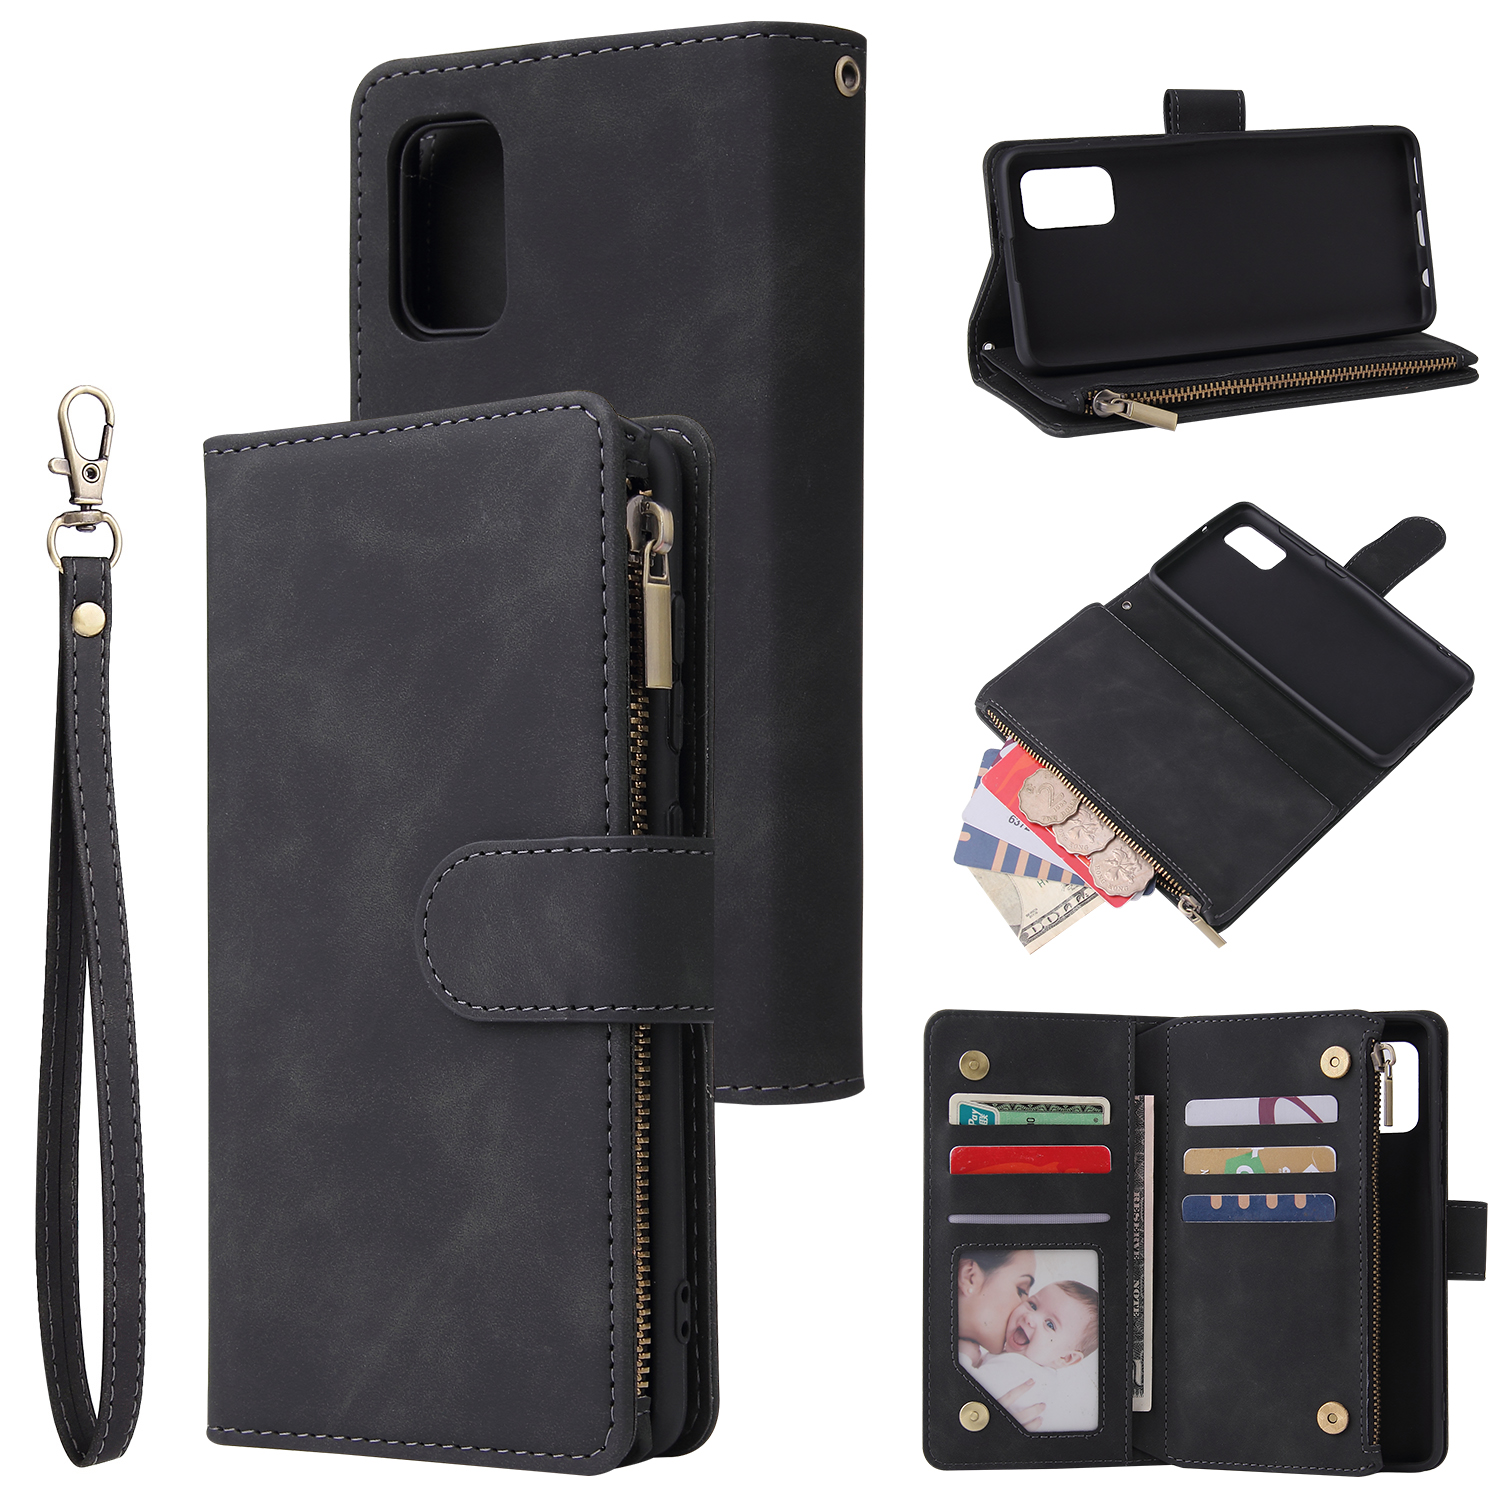 For Samsung A41 Mobile Phone Case Wallet Design Zipper Closure Overall Protection Cellphone Cover  1 black